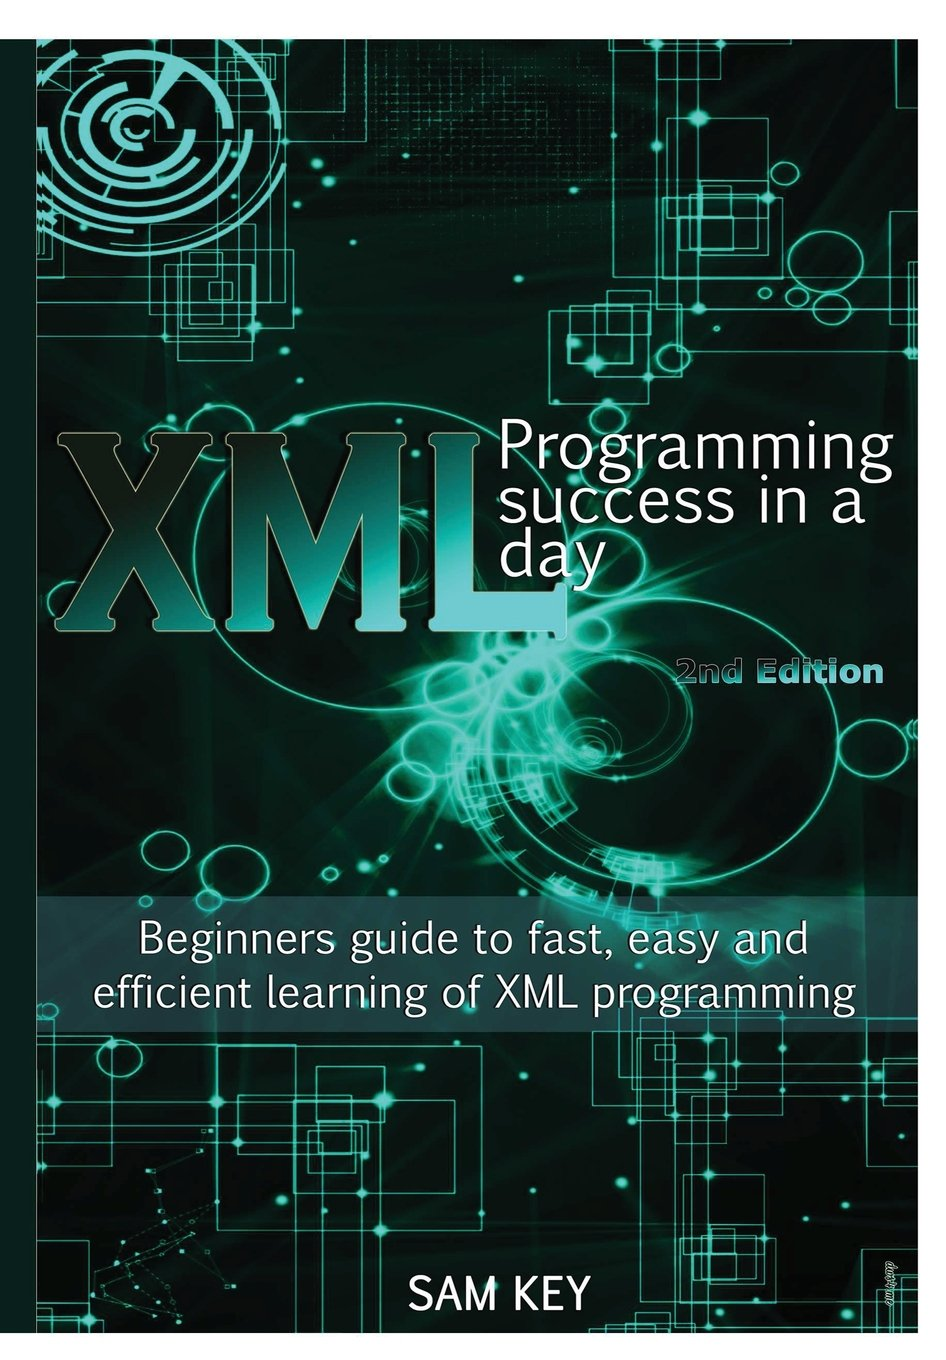 XML Programming Success In A Day: Sam Key: 9781329503212: Amazon.com: Books